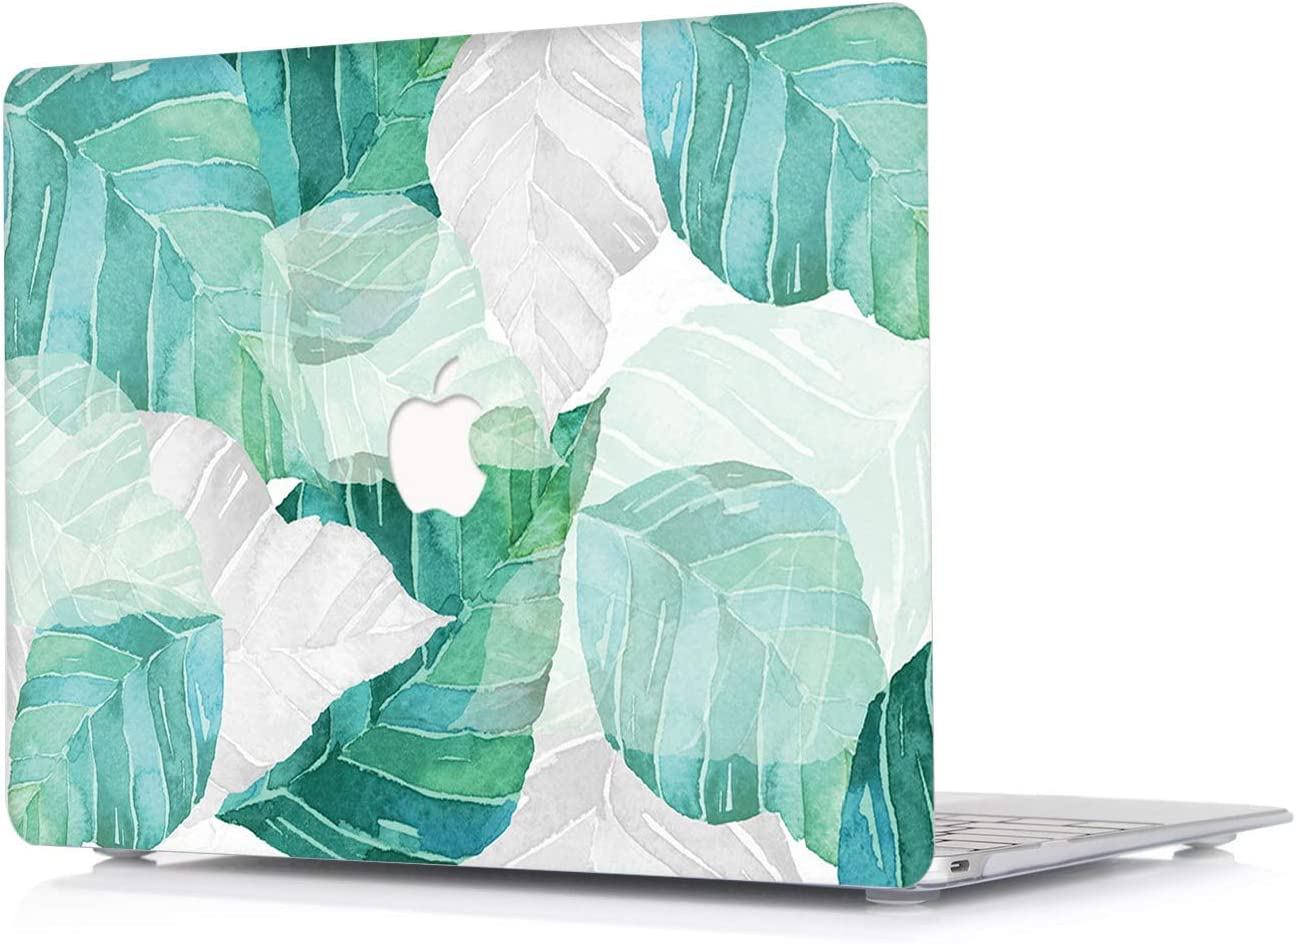 L2W New MacBook Air 13 Inch Case 2018 Version Model: A1932 - [Leaf Pattern Series] Plastic Laptop Ultra Slim Protective Hard Shell Case for Newest MacBook Air 13 with Touch Bar and ID - DC15